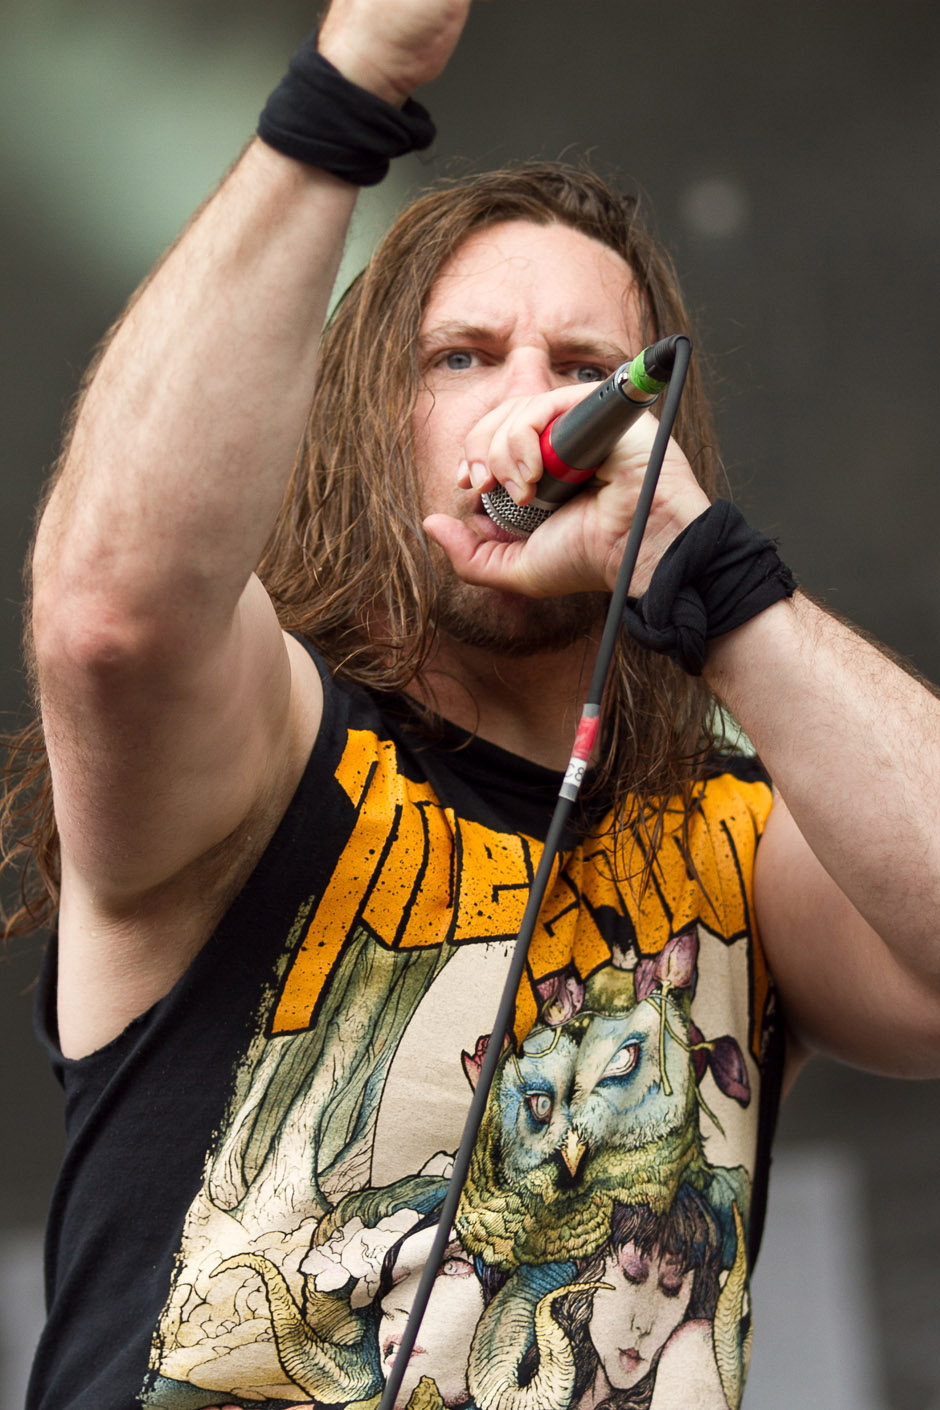 Unearth, With Full Force, 01.07.2012